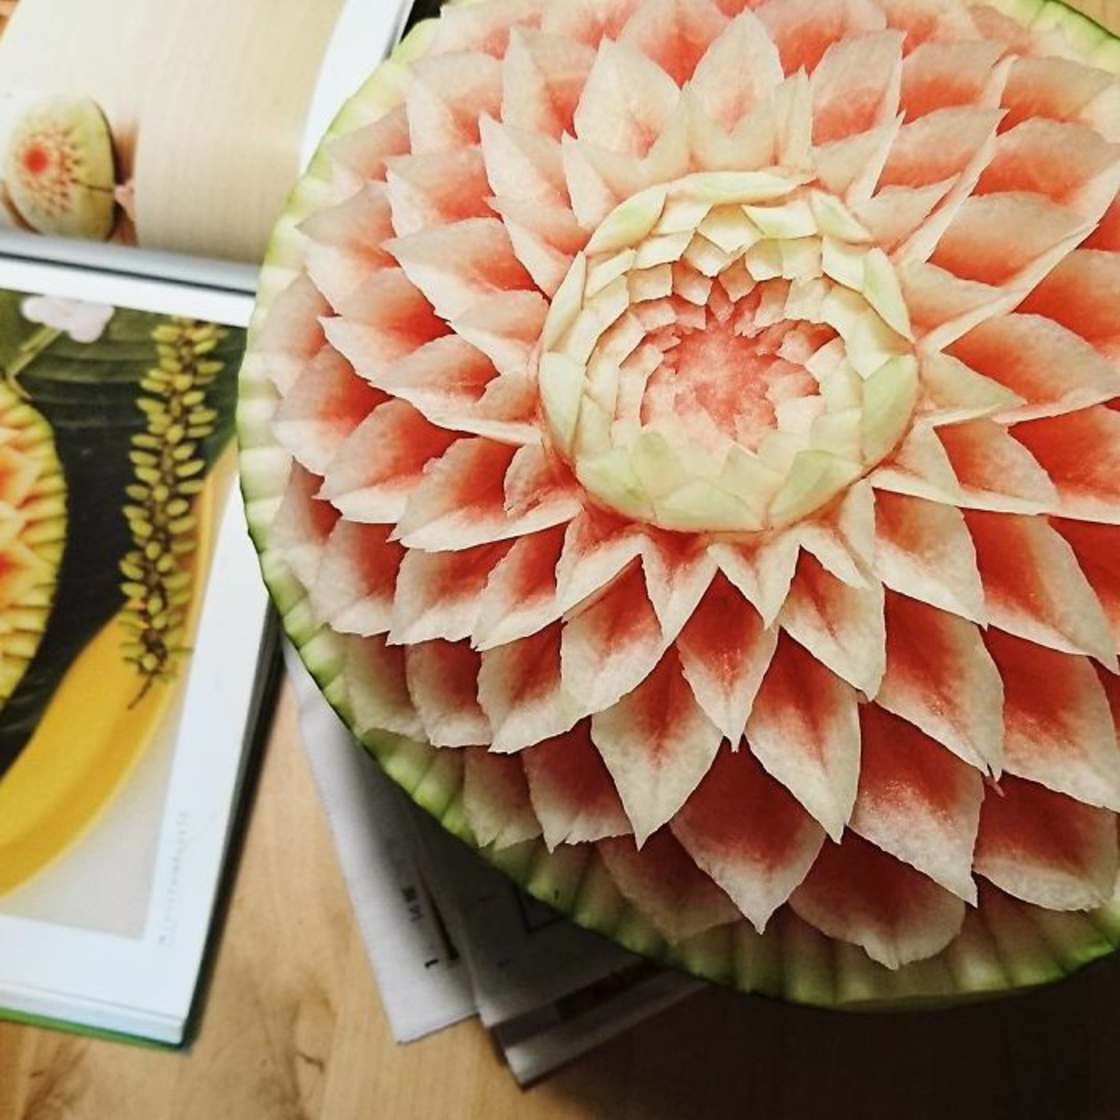 The incredible carved vegetables of a Japanese craftsman